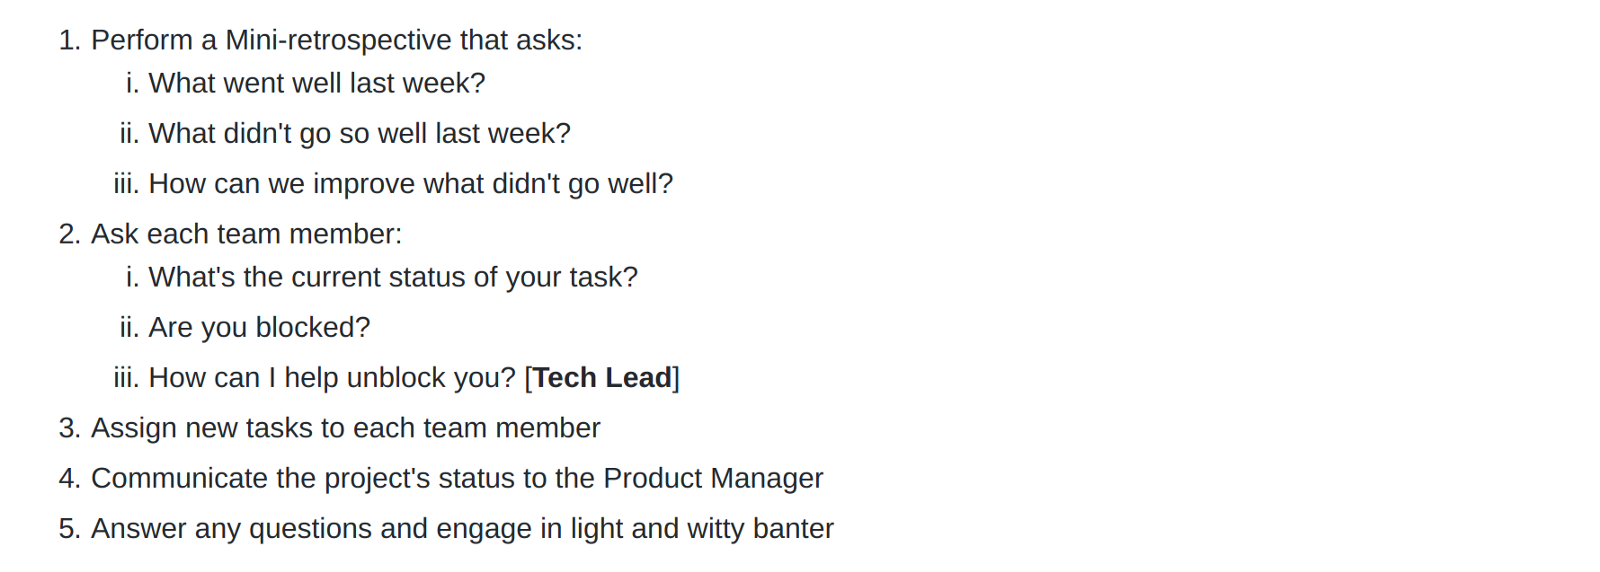 The Effective Tech Lead is a 100x Engineer - By